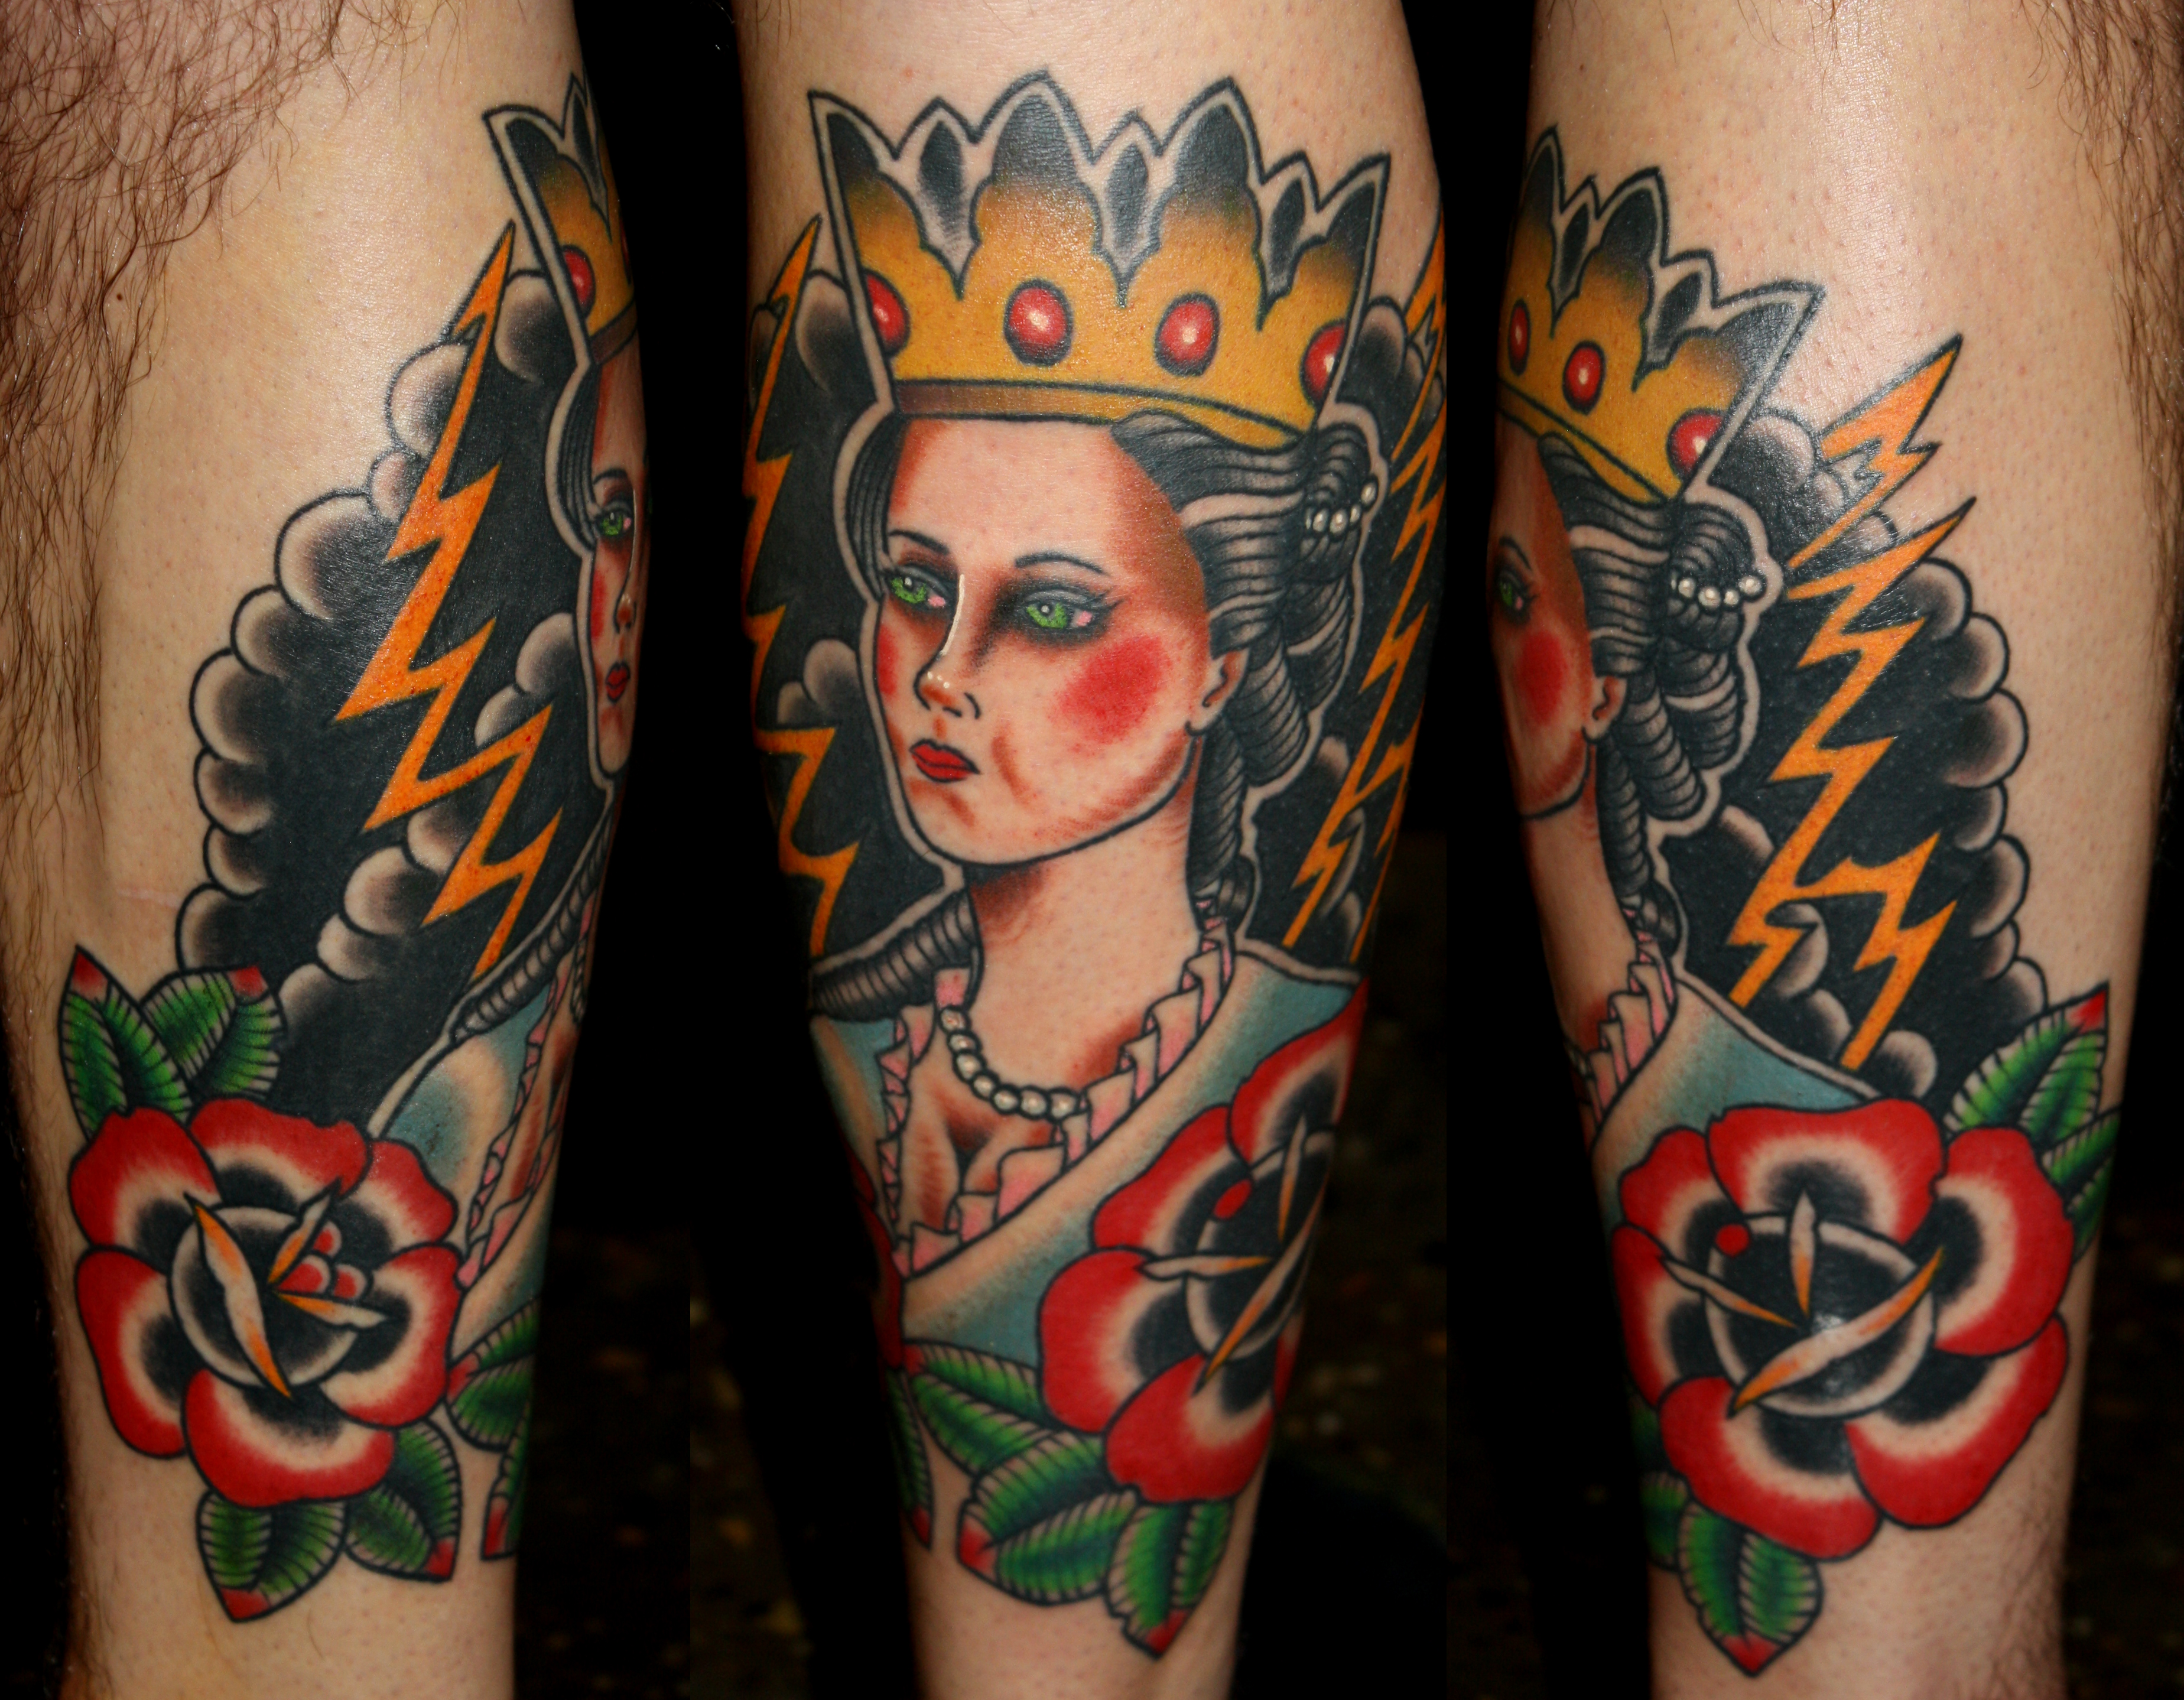 This Video Explains Why You Should Get A Tattoo And Why Ideas And Designs